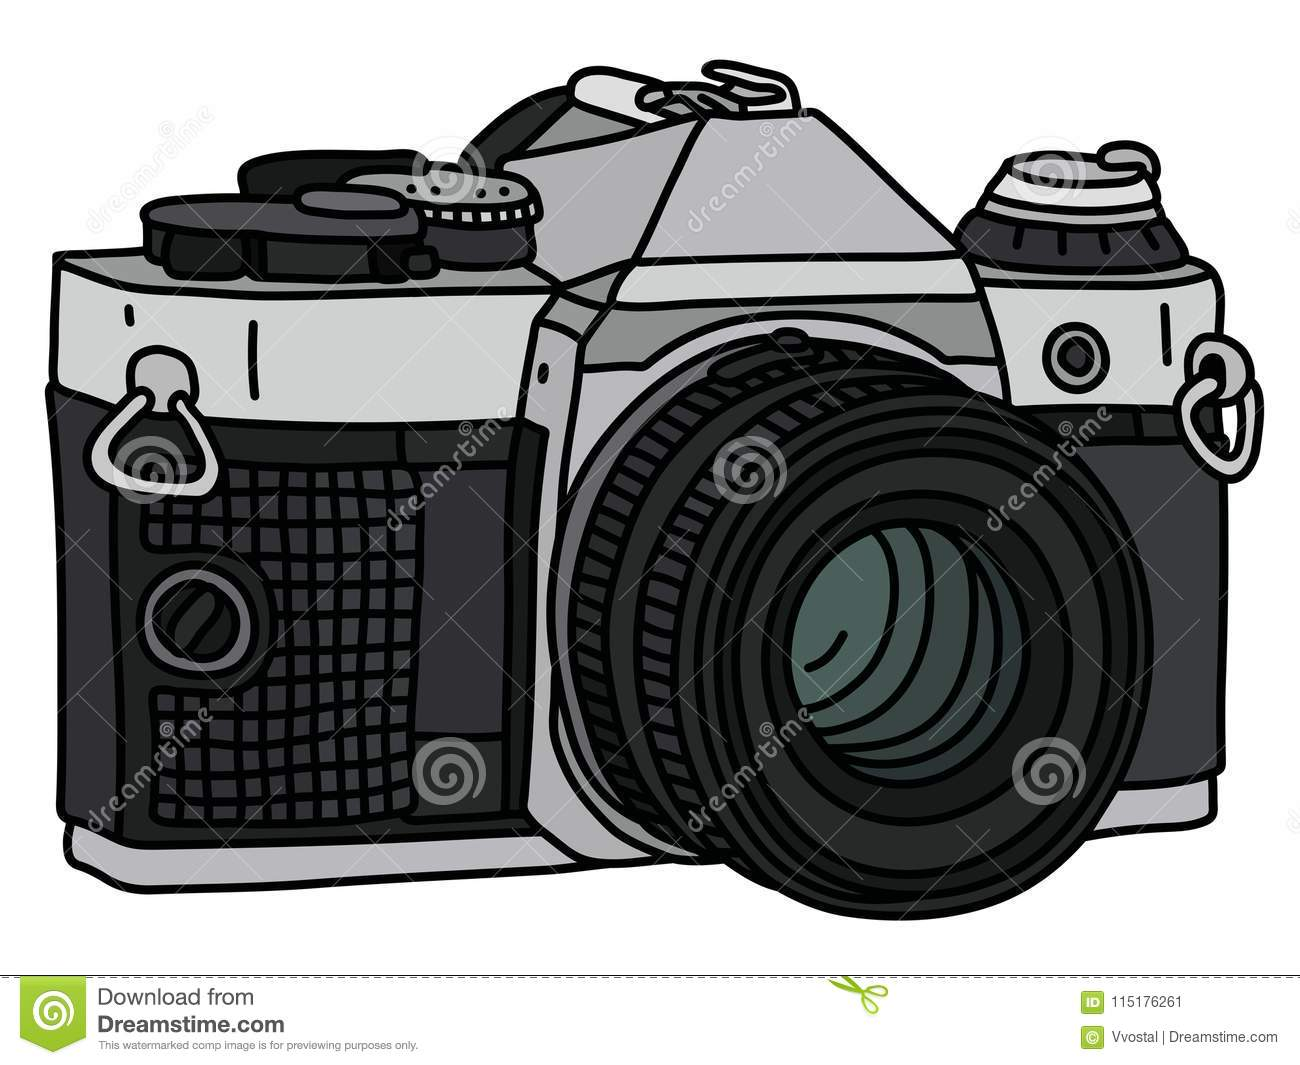 Camera Vintage Vector Free : The retro photographic camera stock vector illustration of device